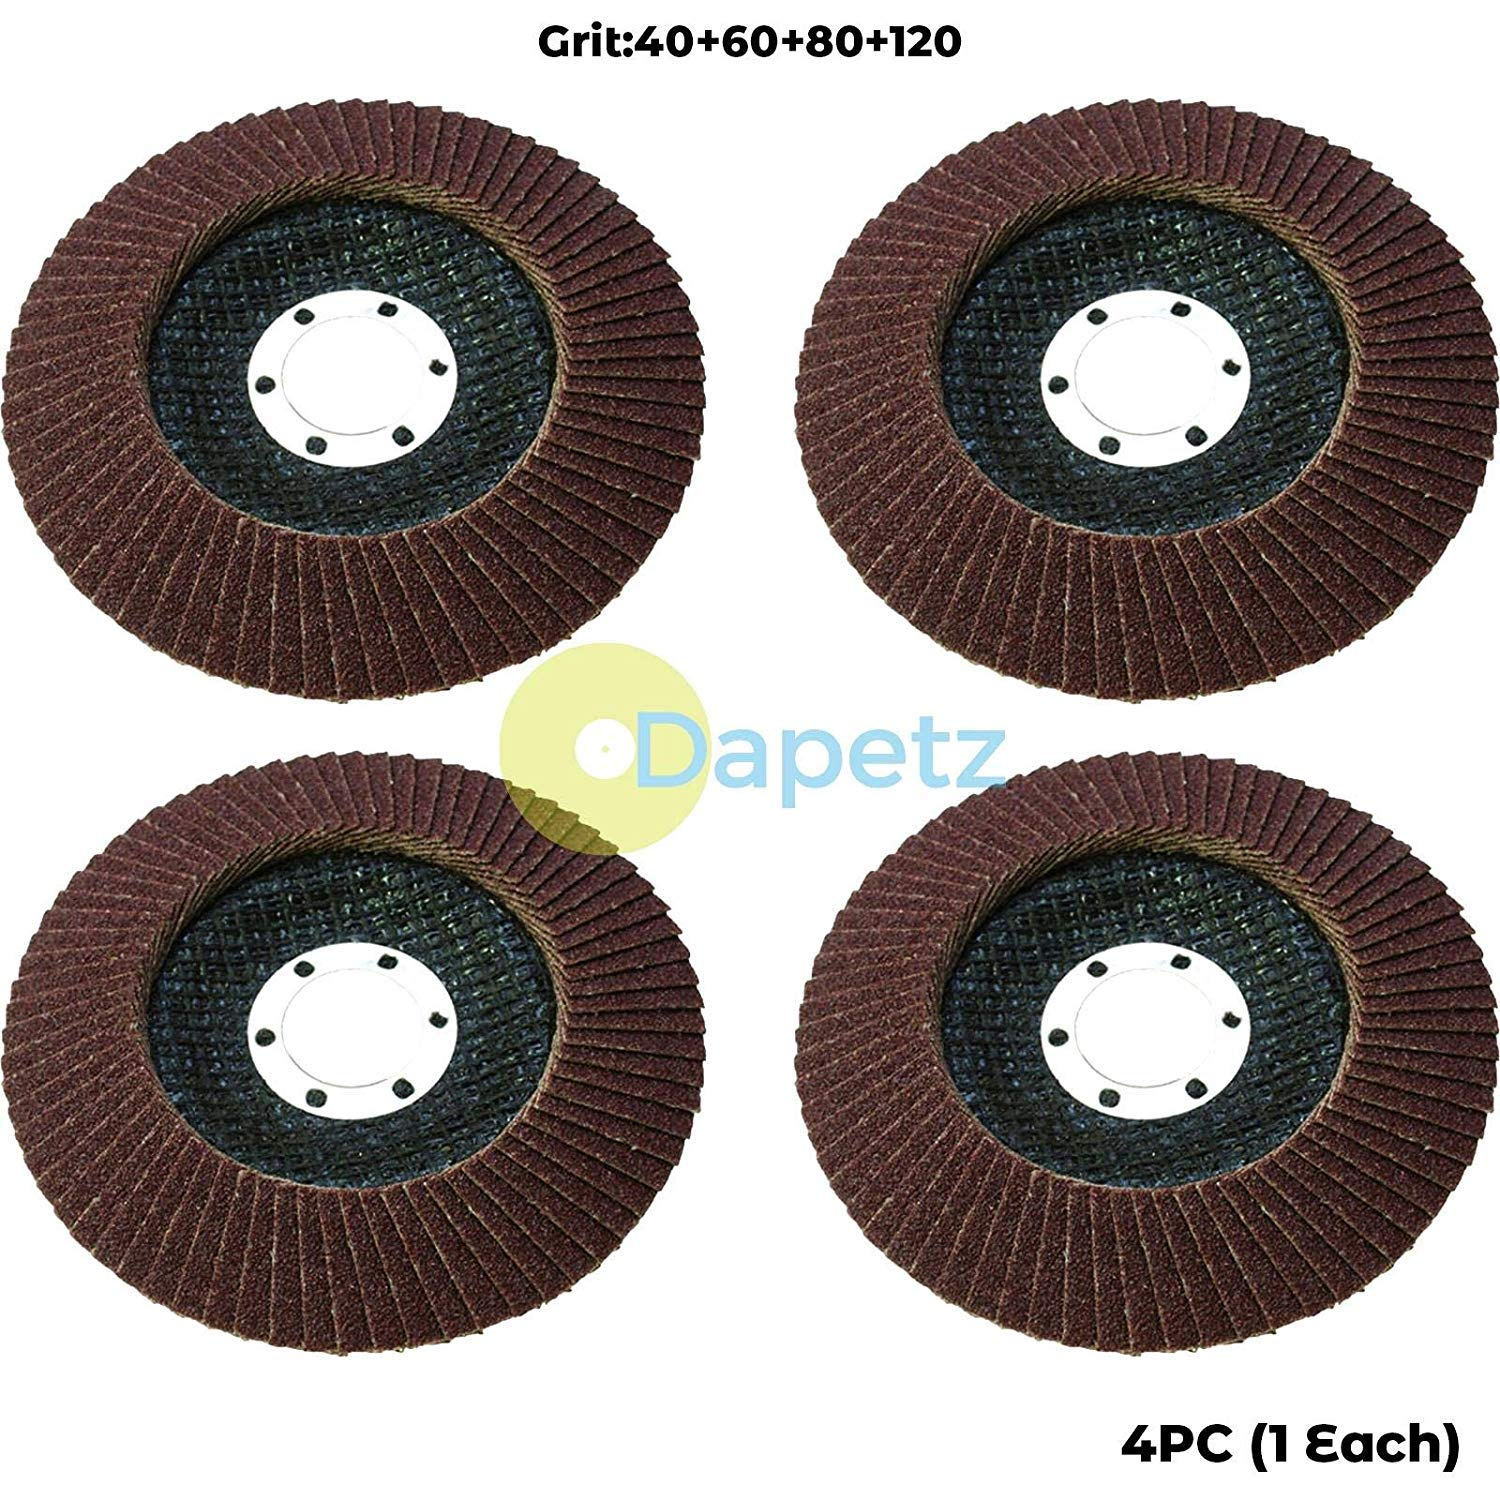 Pack of 50 6 Hole Dust Extraction System Electric//Air Sanders Sanding Discs 320 Grit Body+ IPA1011 Plain Boxed HookNLoop HookIt DA 6 150mm